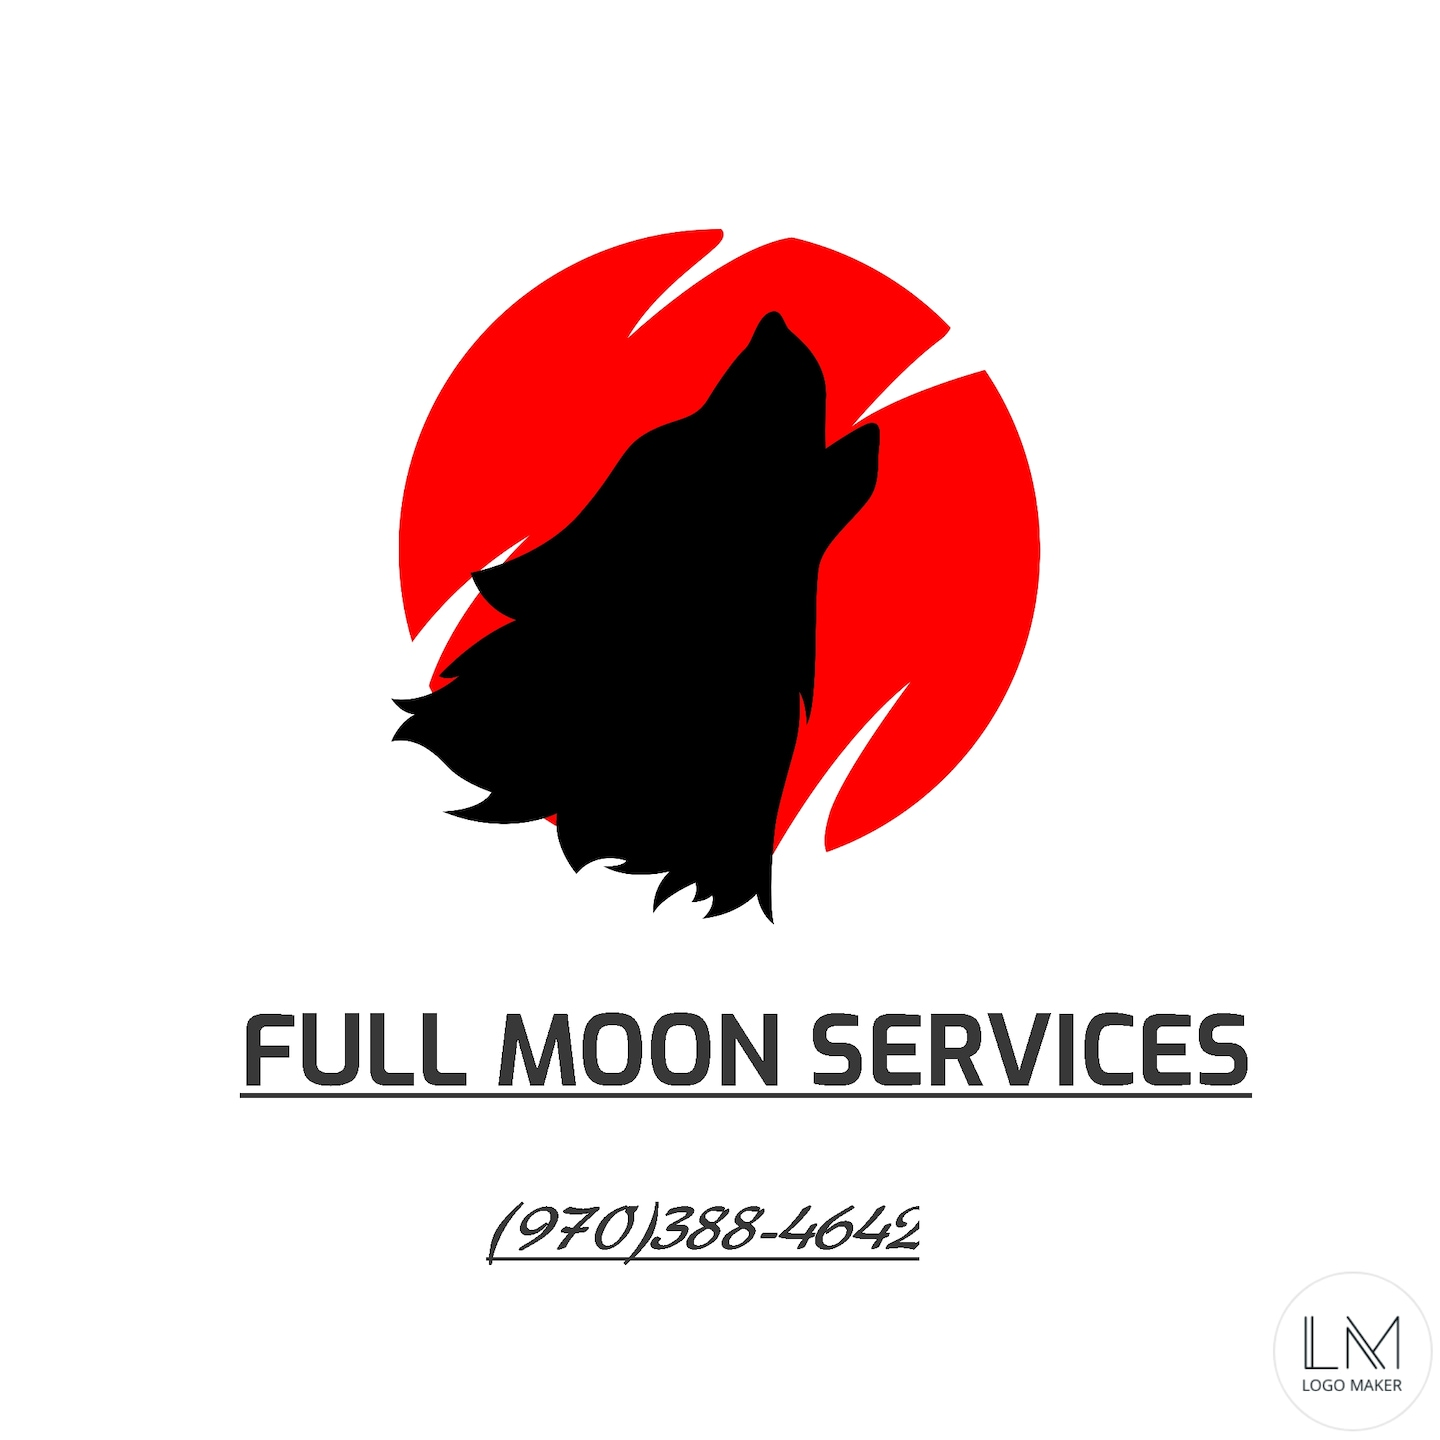 Full moon services